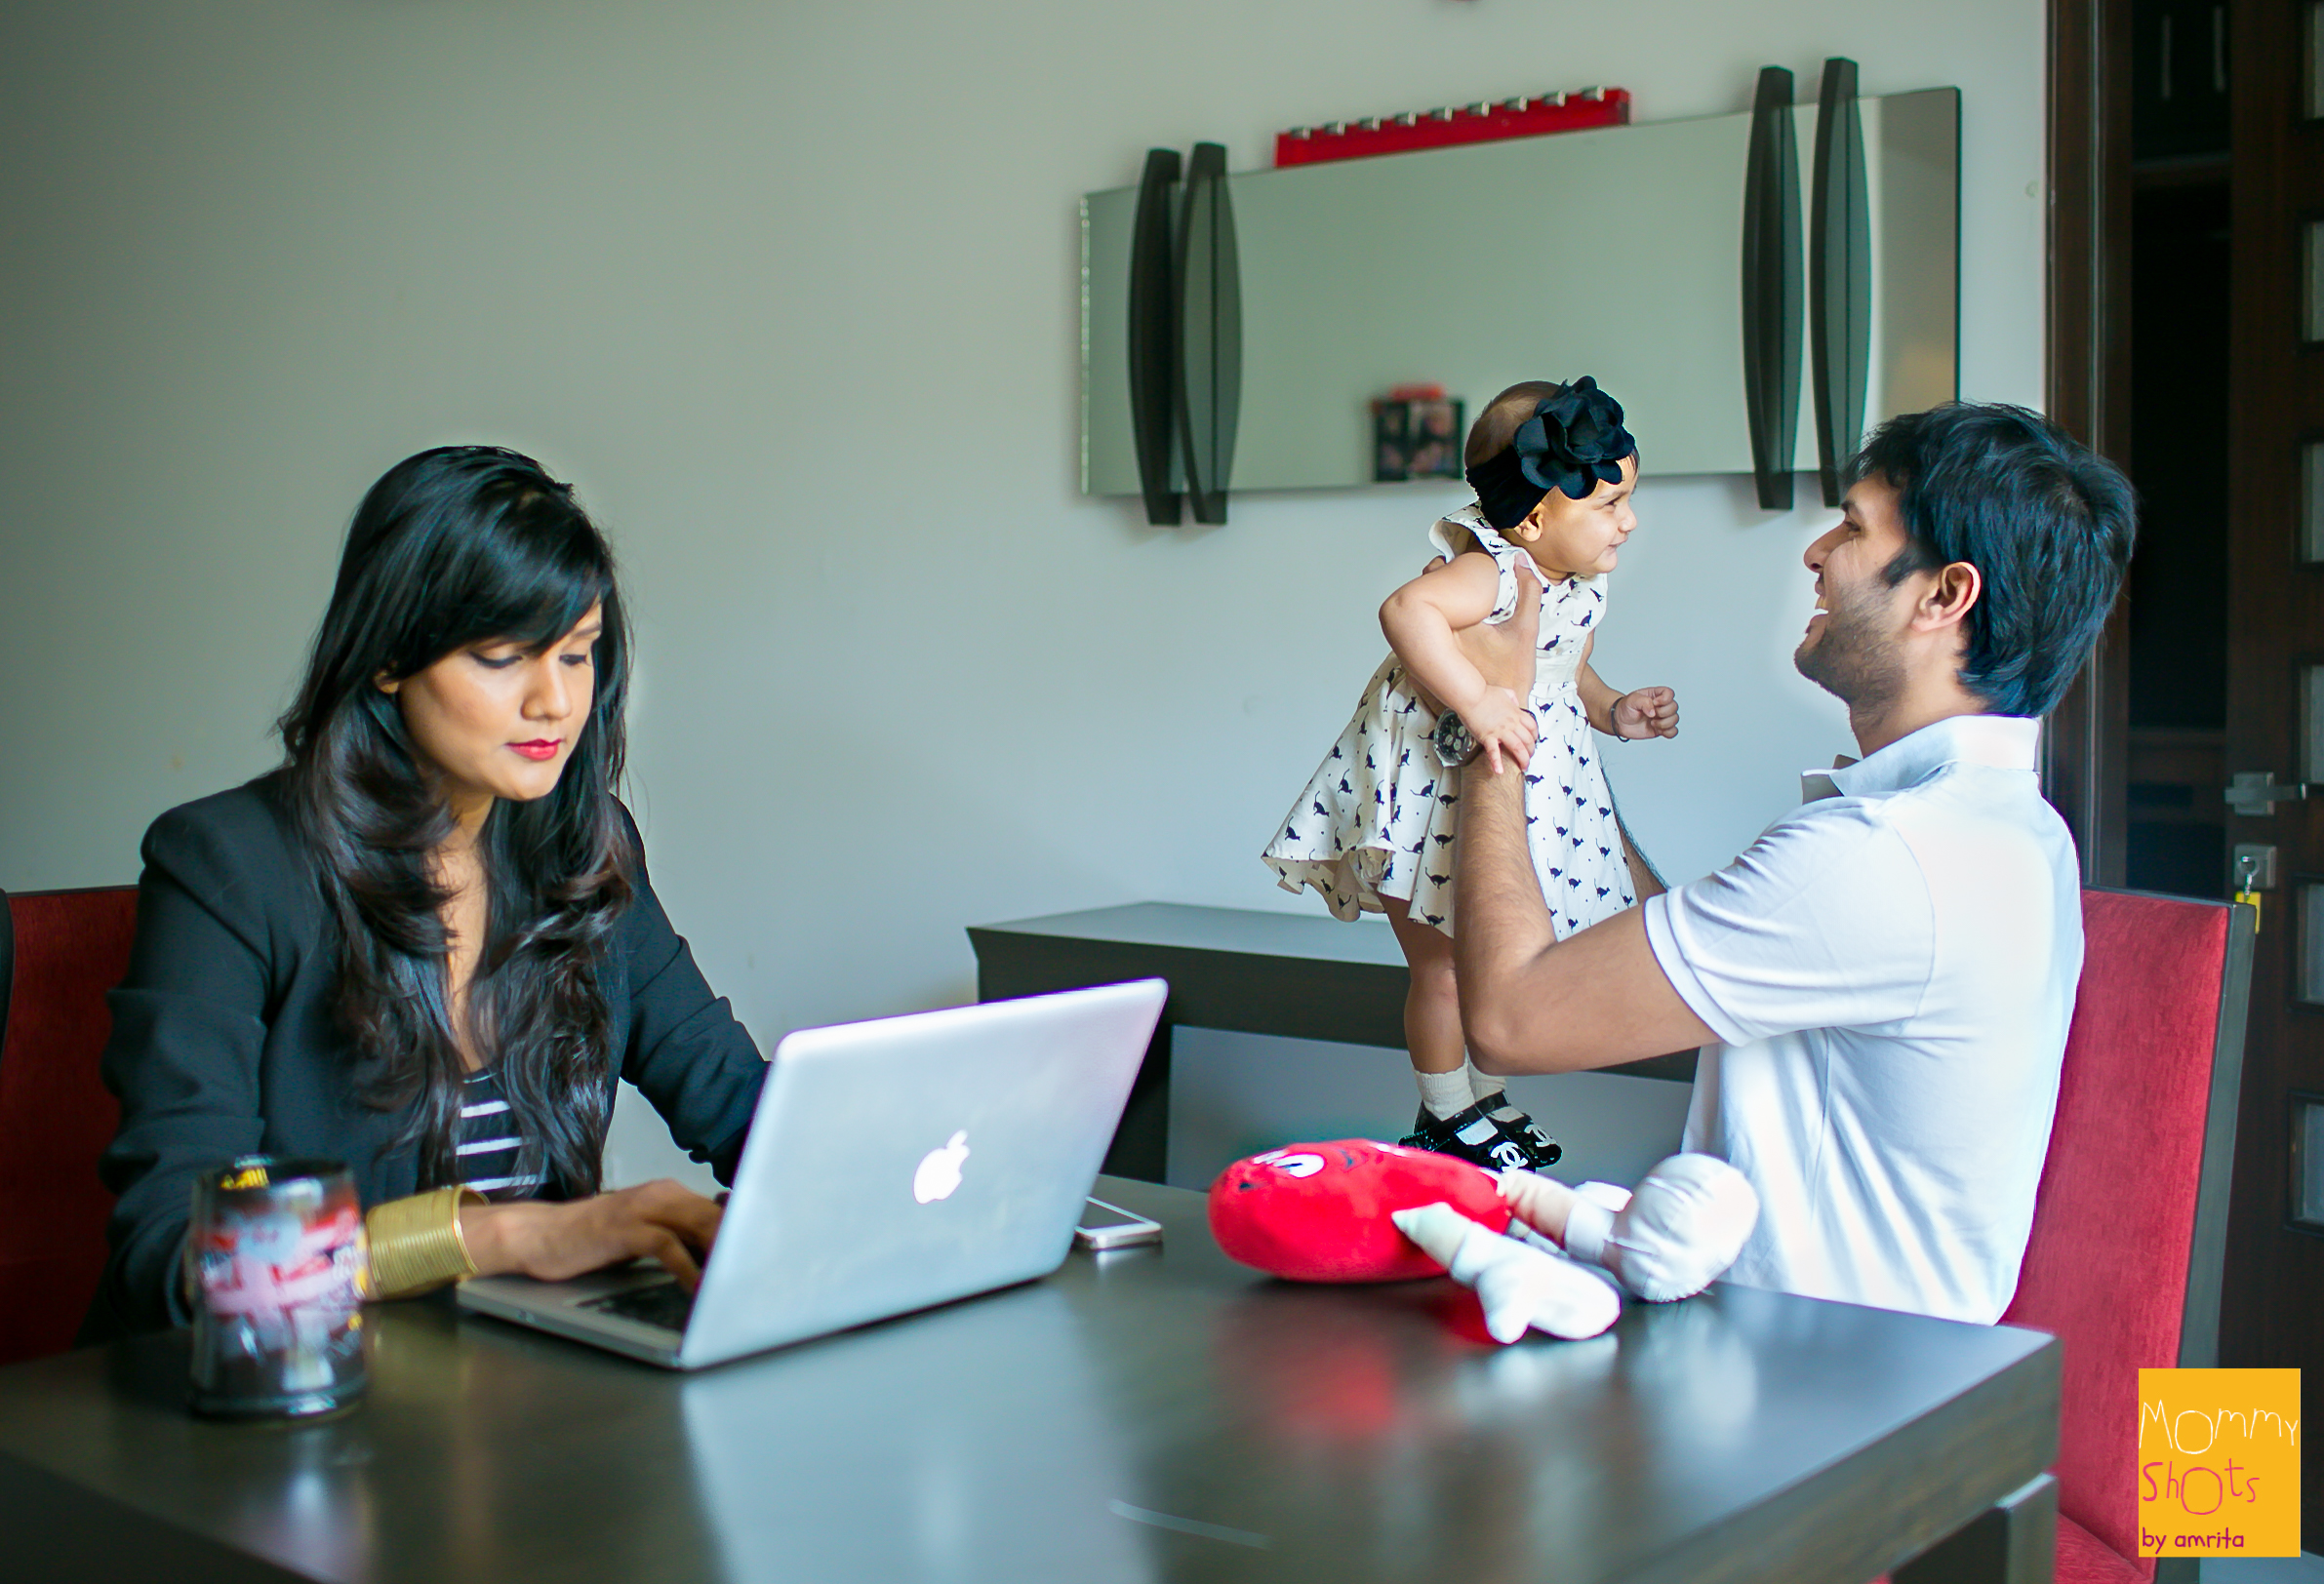 Watching Ankit be the best dad he can be the last 6 months has been special and pleasantly surprising! Ankit encouragedher to get back to work by sharing Shanyraa's responsibilities equally, while handling his own busy career.